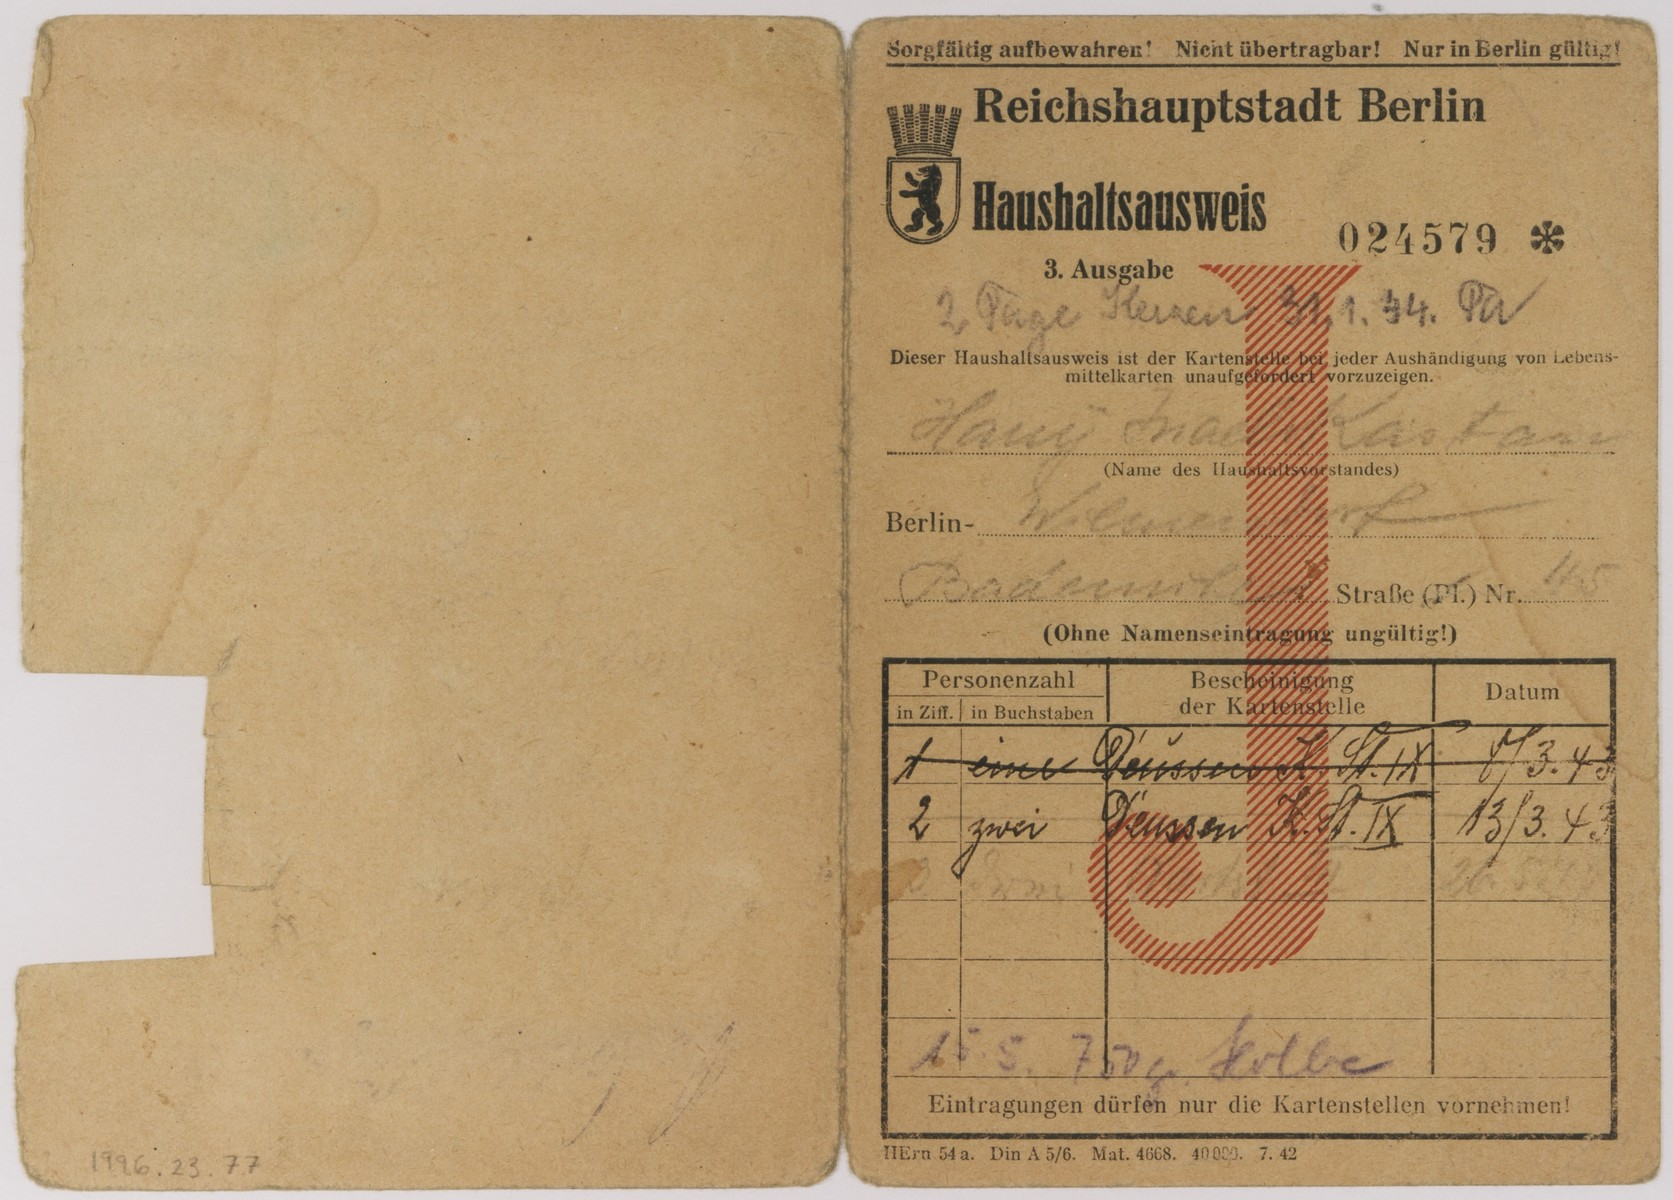 A household identification card (Haushaltsausweis) issued by the Reichshauptstadt Berlin in 1943 to Harry Israel Kastan (b. March 20, 1891), a Jew living in Berlin-Wilmersdorf.  This household identification card is to be presented, without being asked, each time food ration cards are given out.